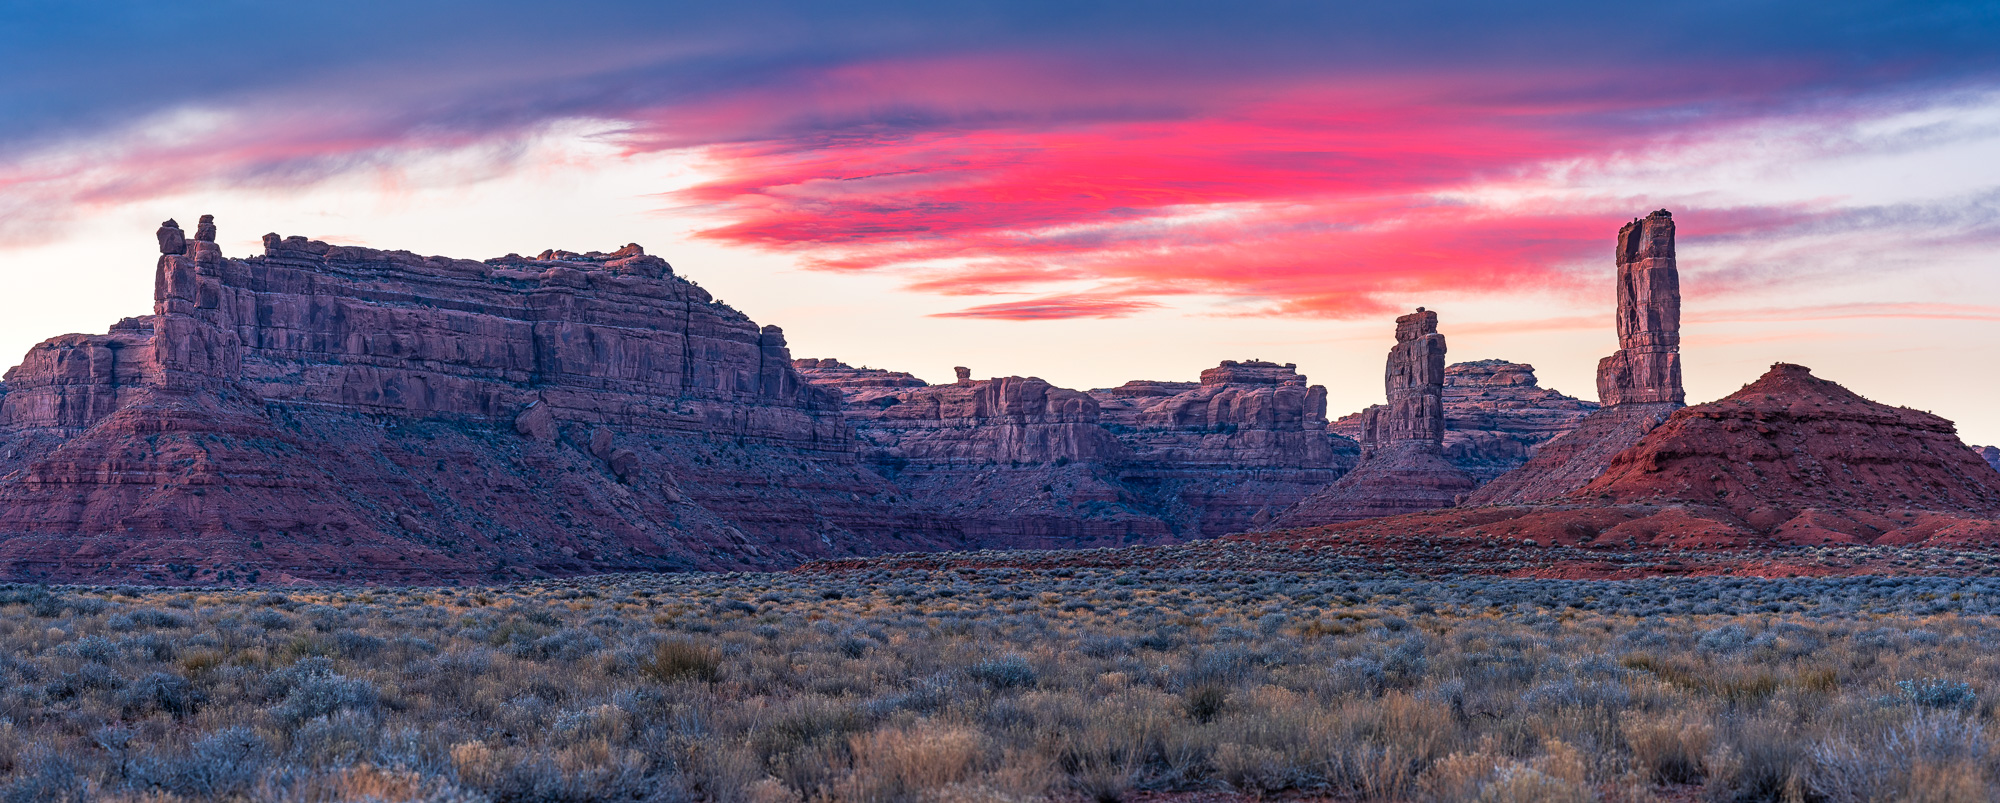 a cotton candy sunset over valley of the gods in bears ears national monument